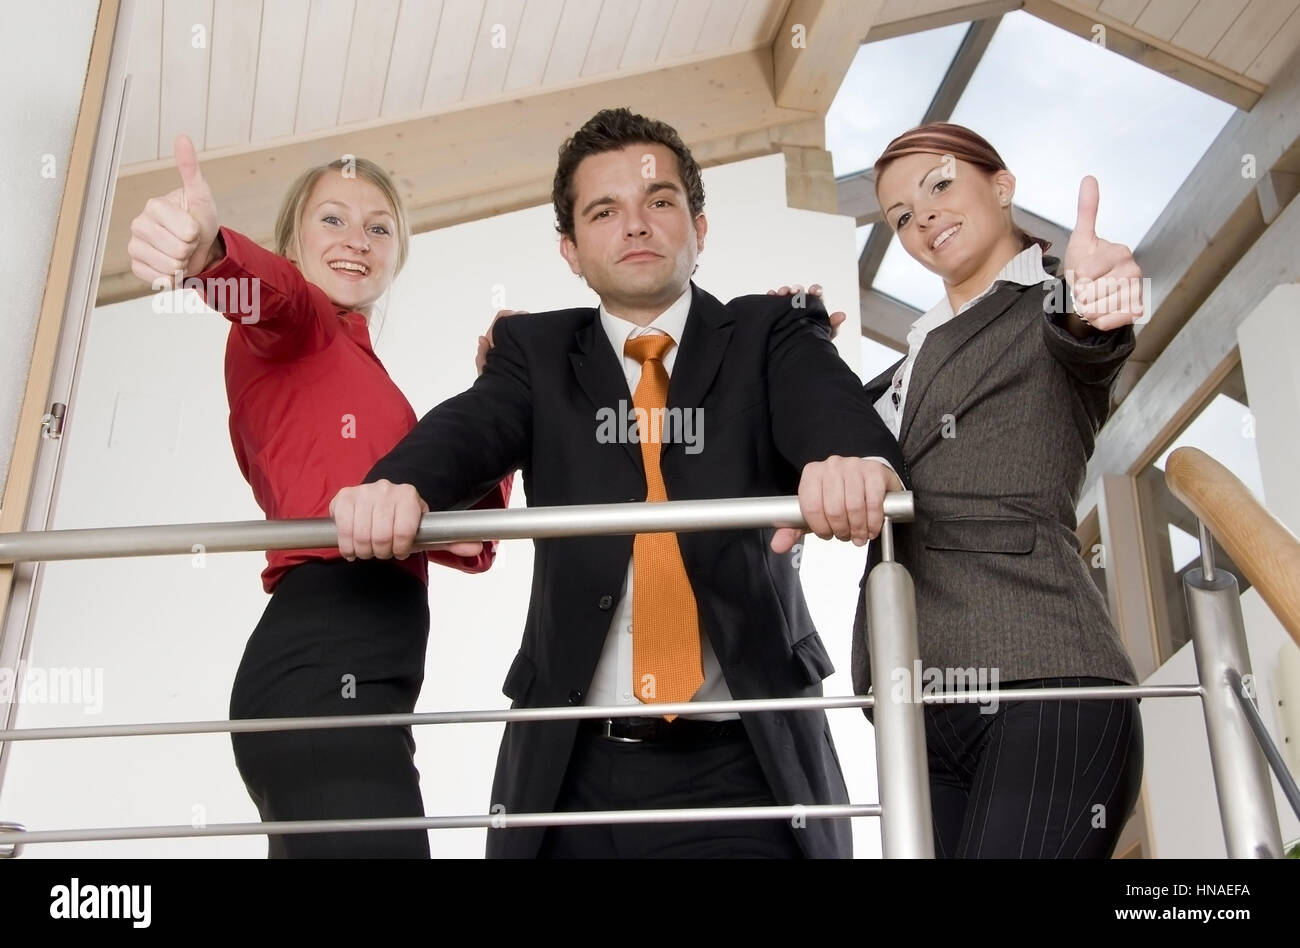 Drei junge Geschaeftsleute - three young business people - Stock Image